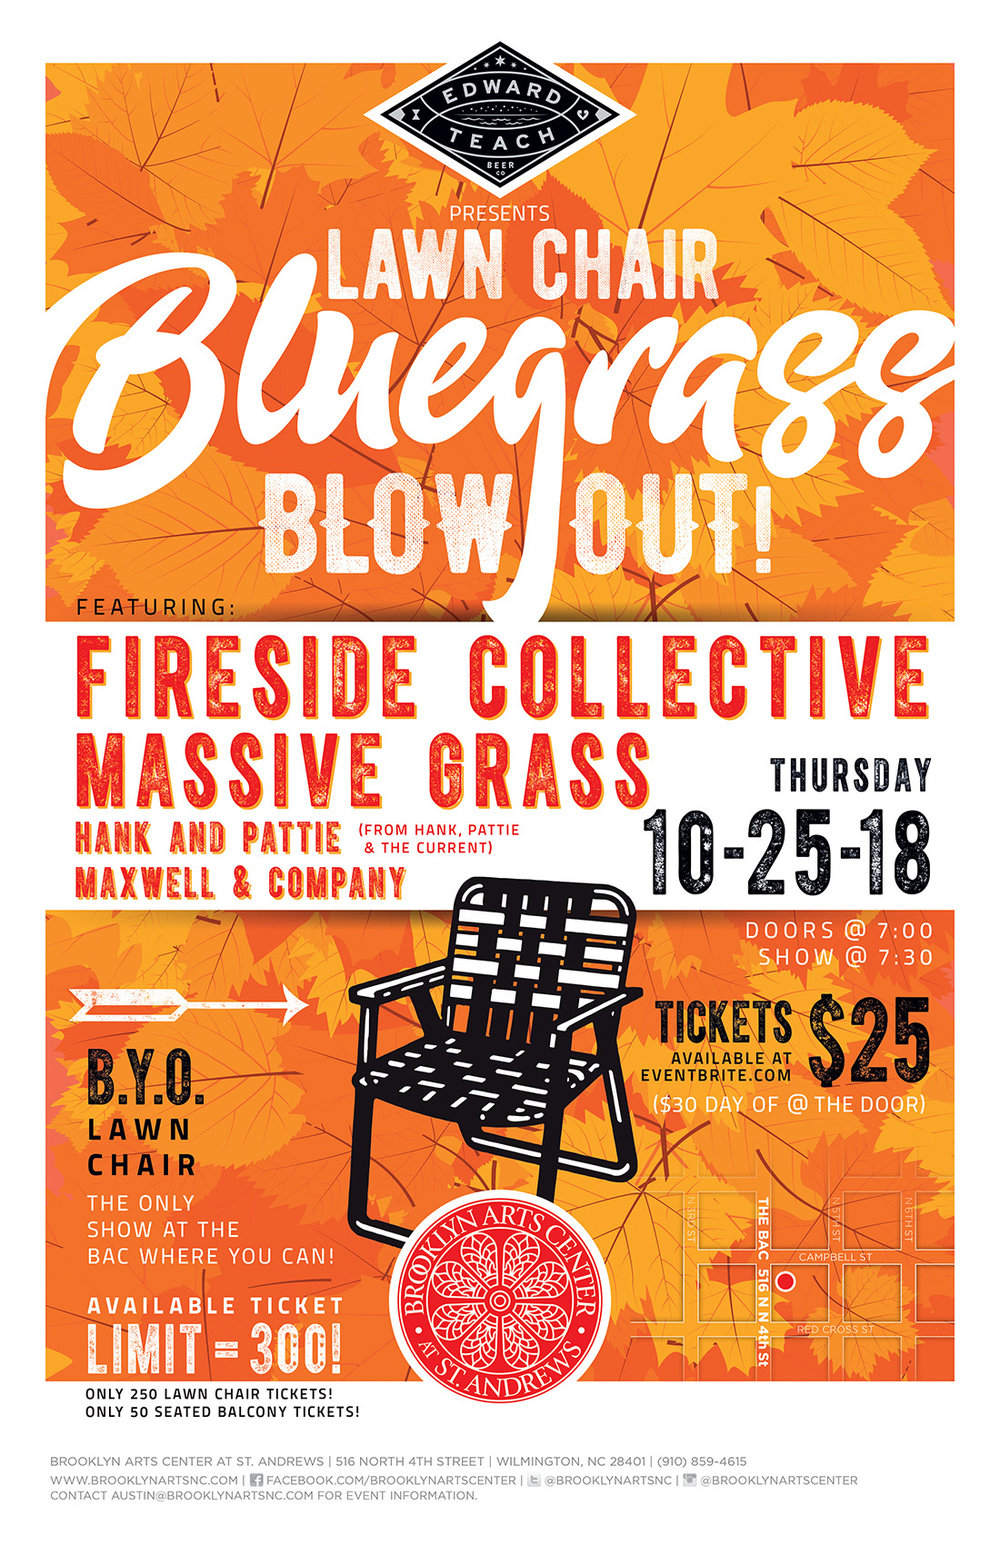 BAC-2139-Lawn Chair Bluegrass Blowout_poster_p3.jpg